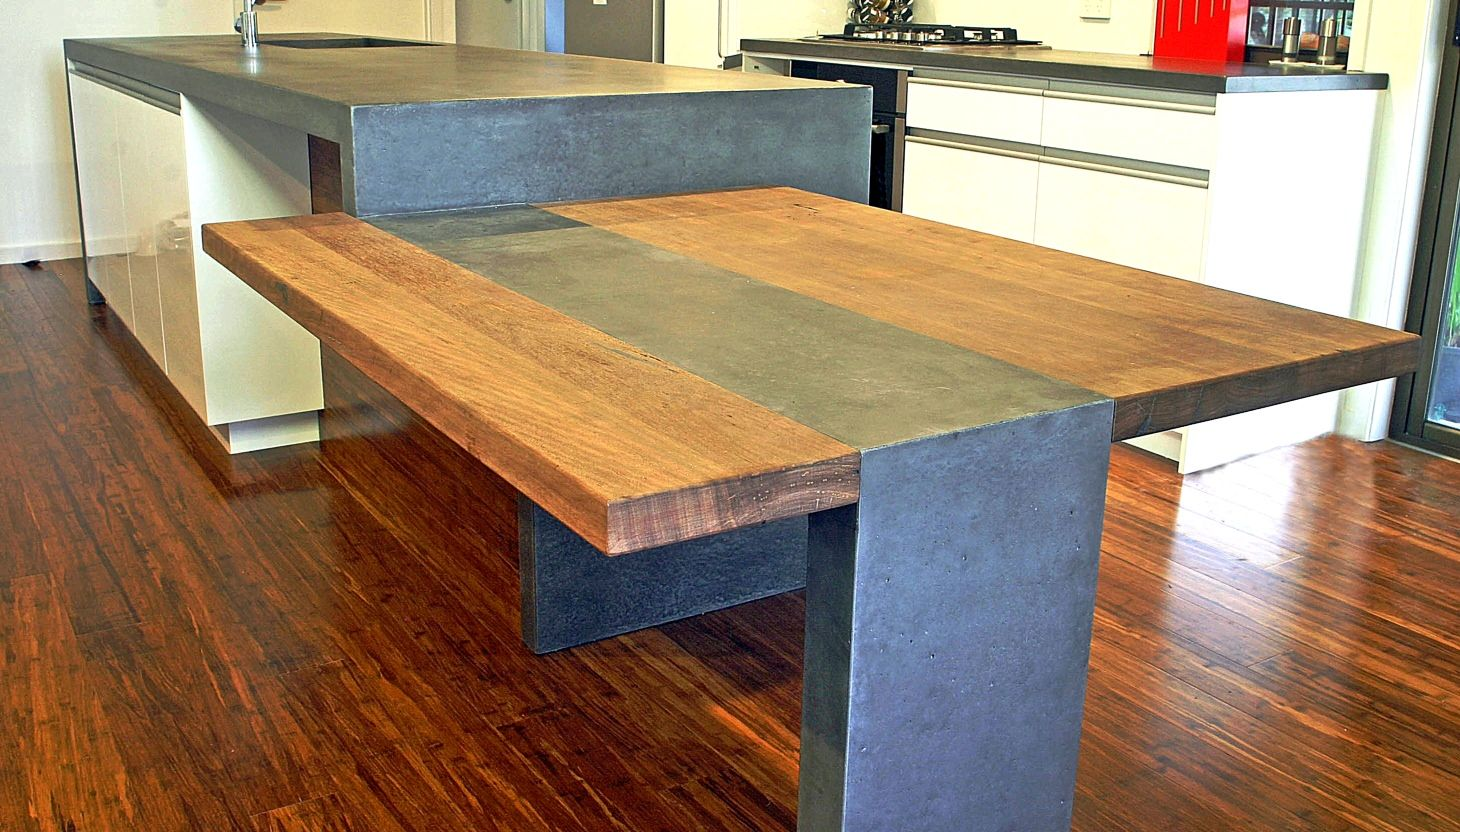 Multi-material Benchtops - Timber and Concrete Benchtop - Adelaide Outdoor Kitchens